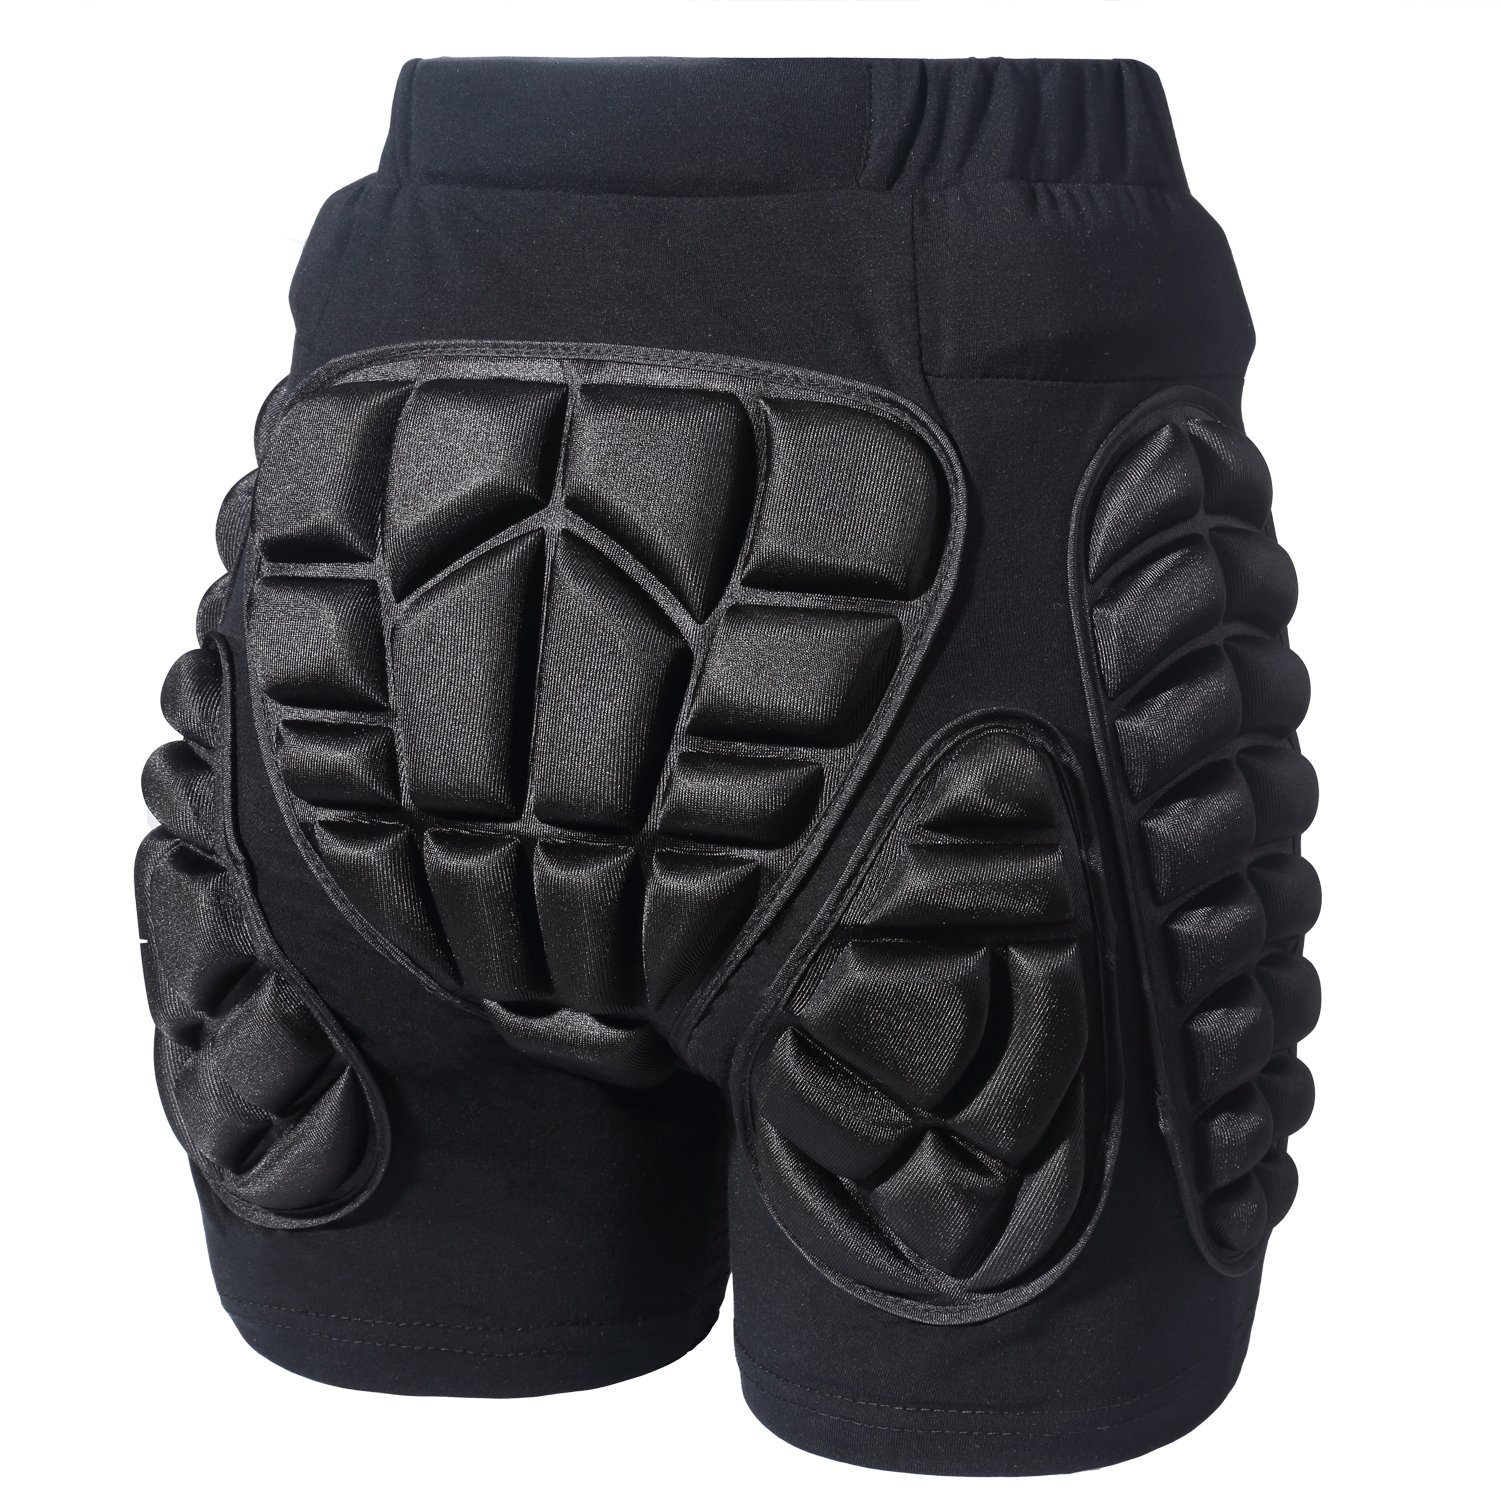 Soared 3D Protection Hip Butt EVA Paded Short Pants Protective Gear Guard Impact Pad Ski Ice Skating Snowboard Black